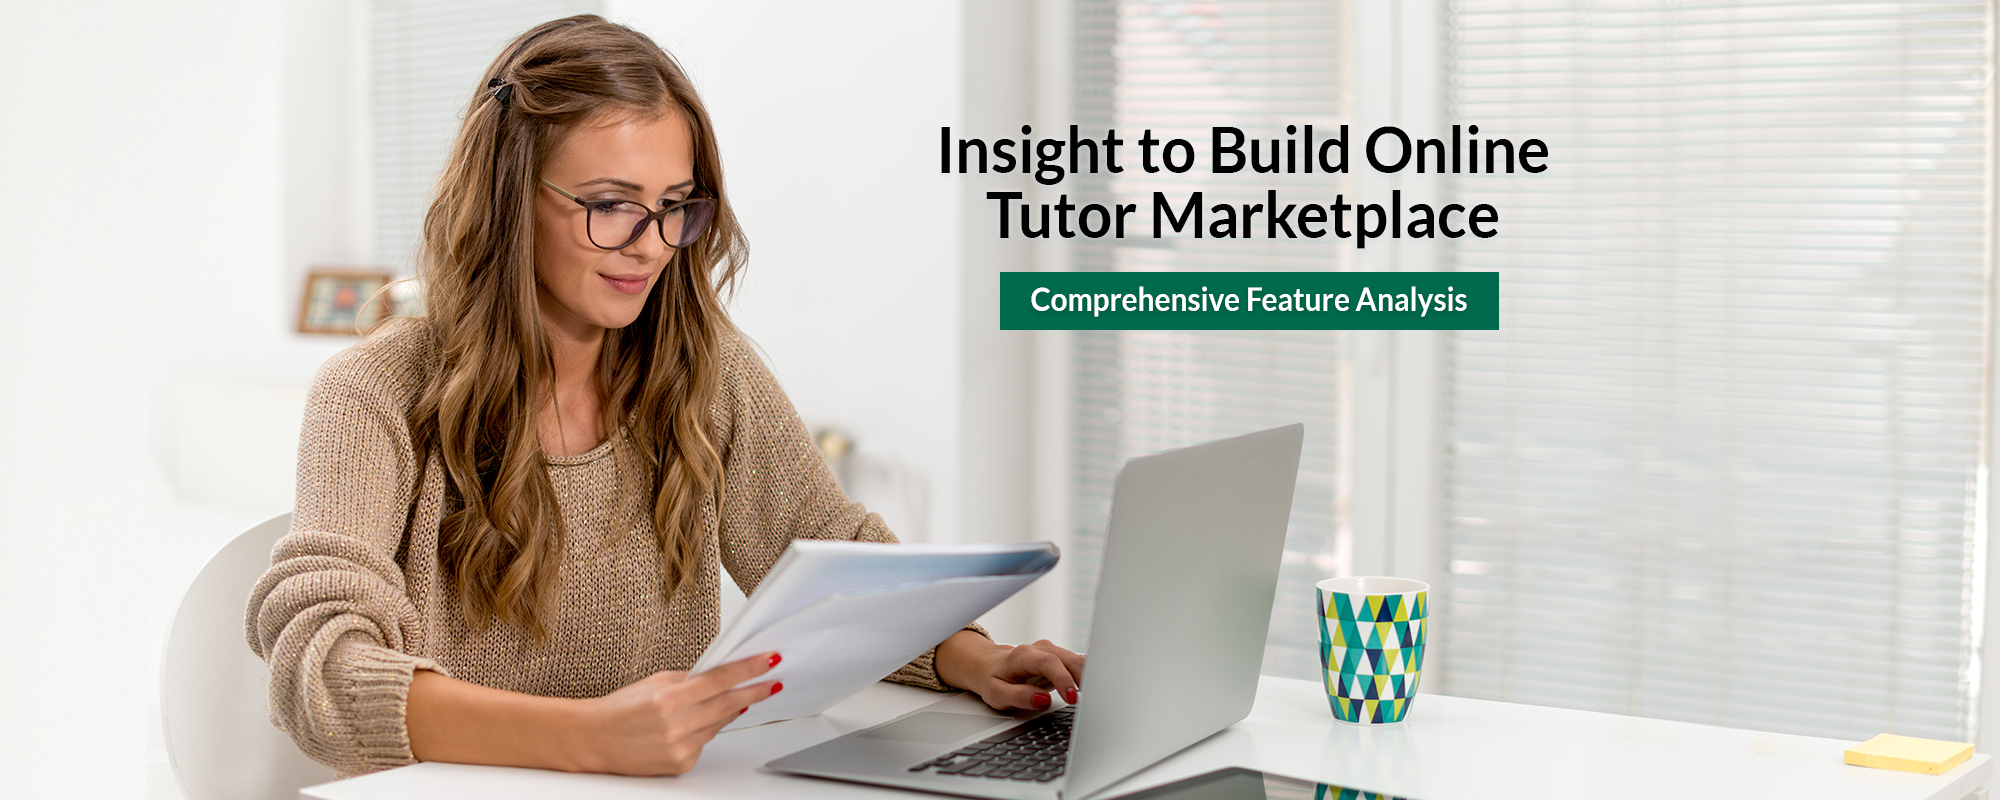 Best-in-class Website Features to Launch Tutoring Marketplace